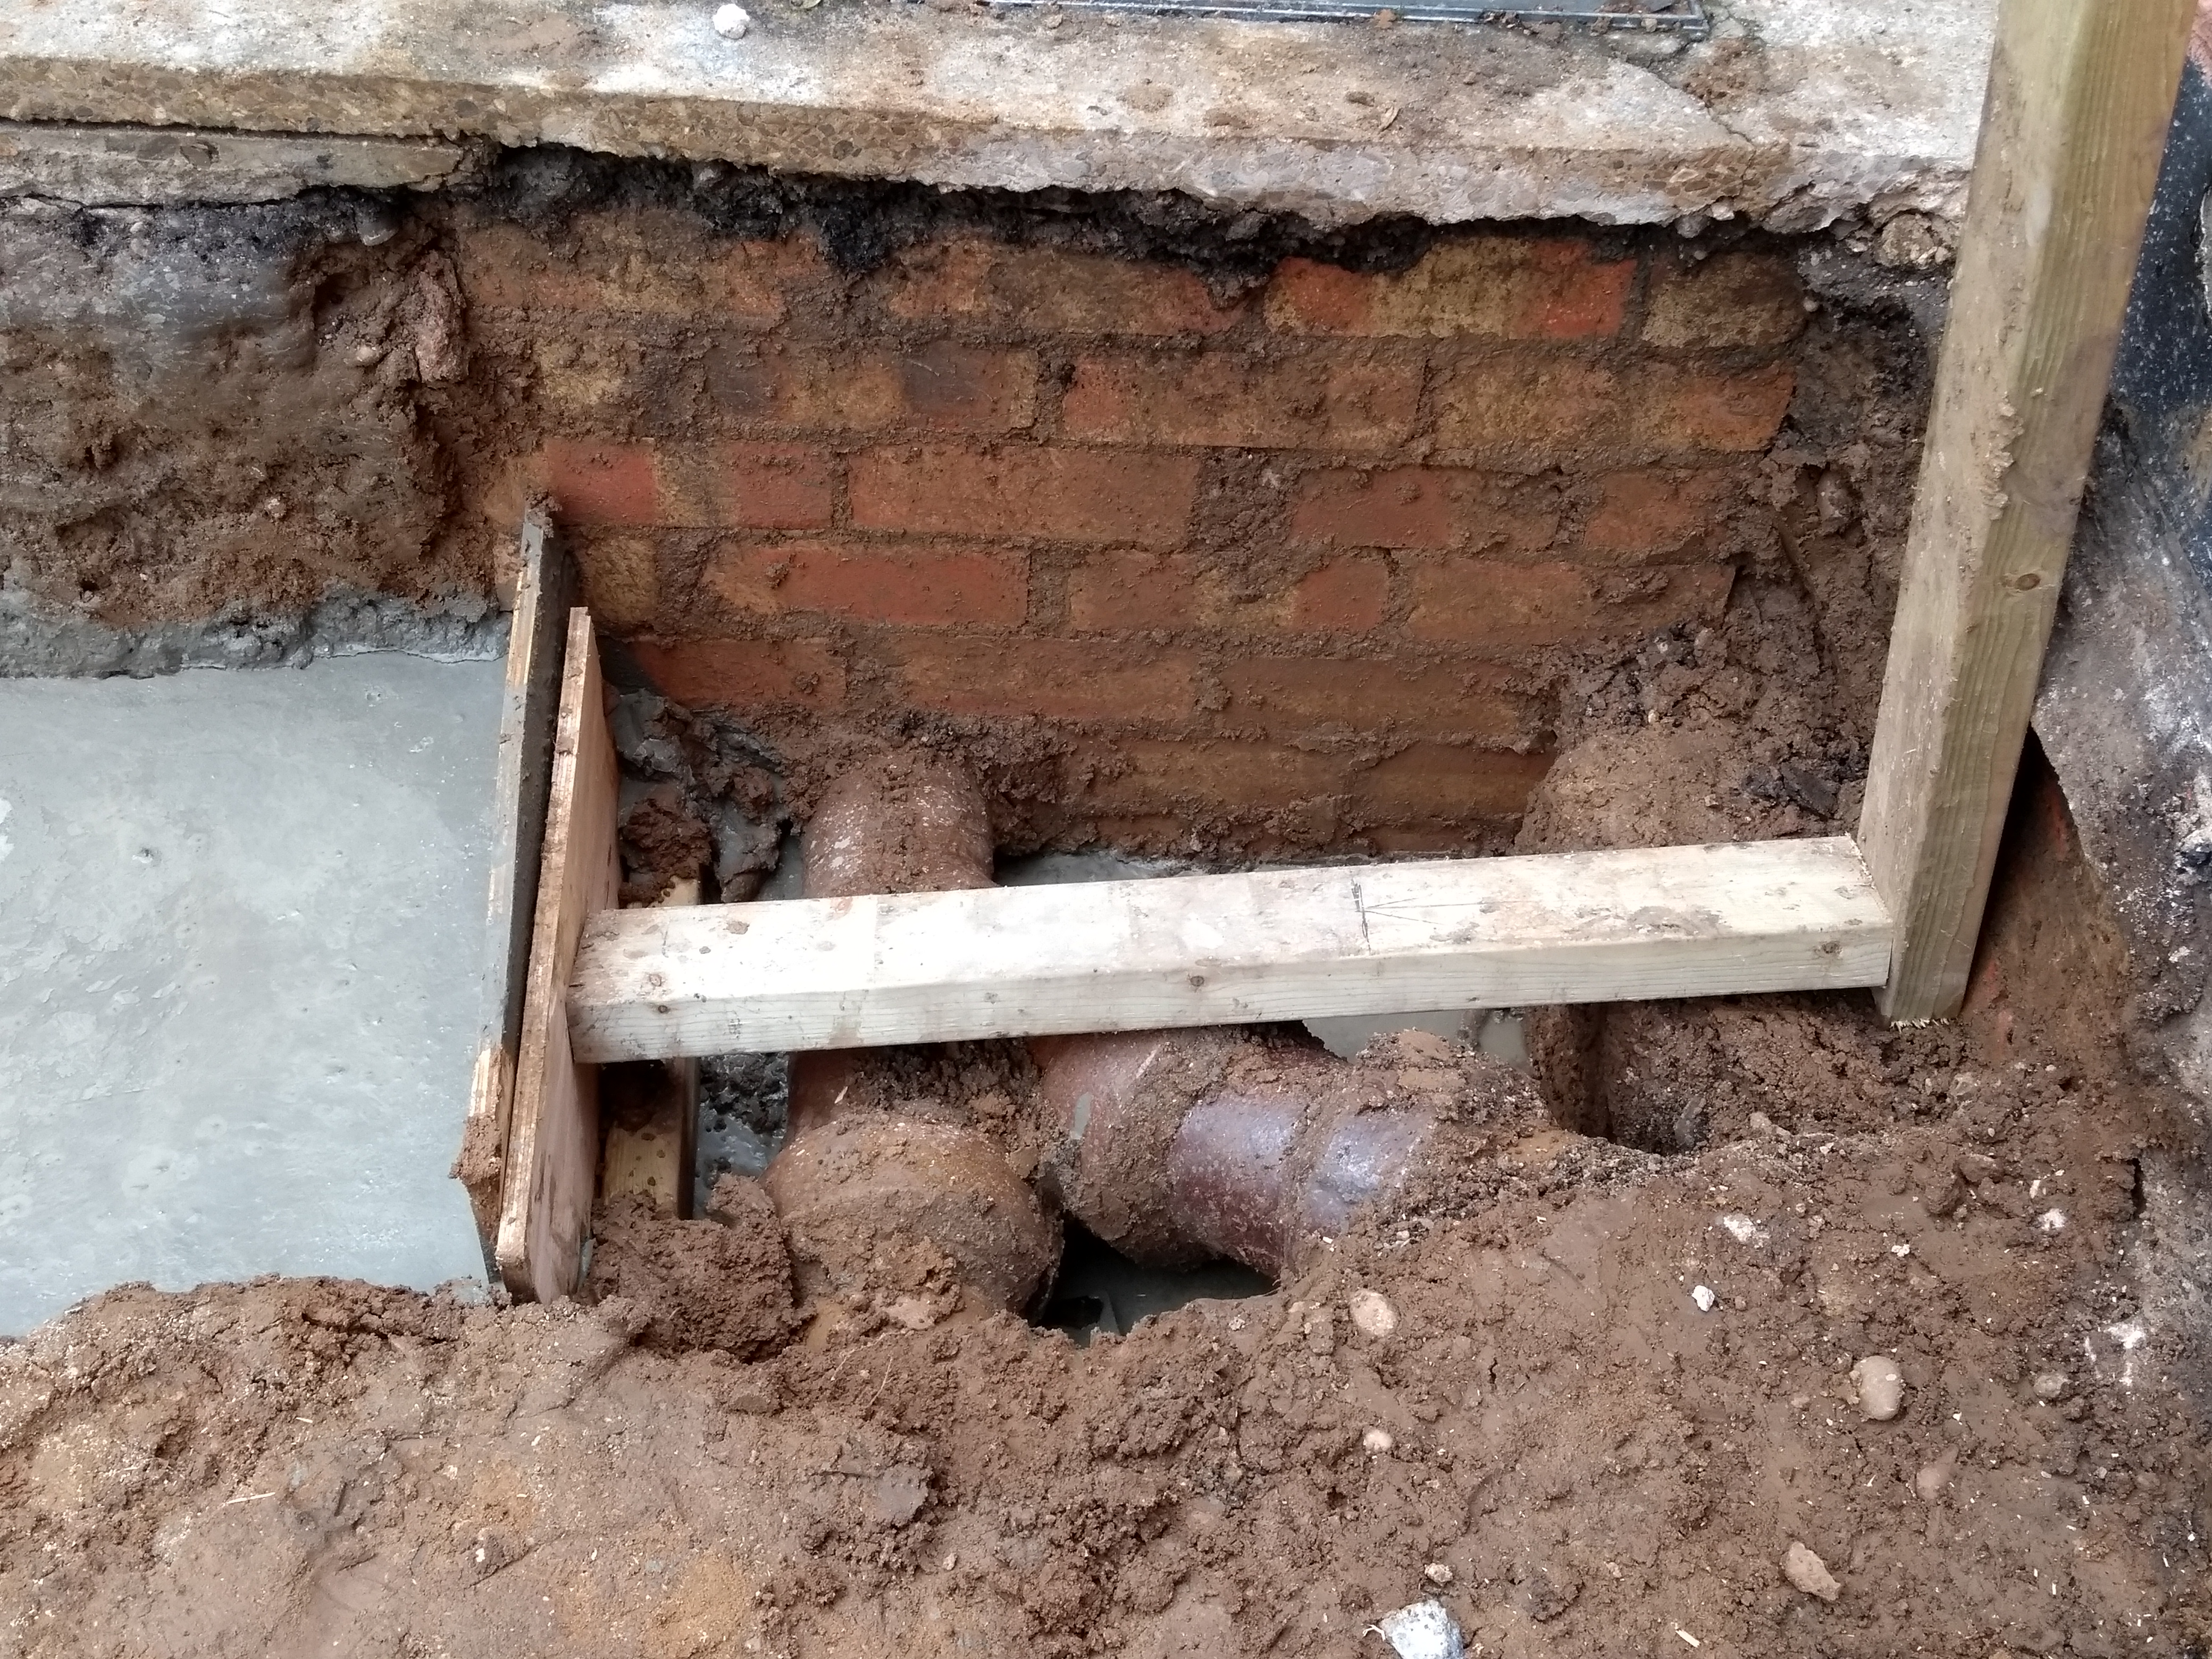 concrete poured around drainage pipes